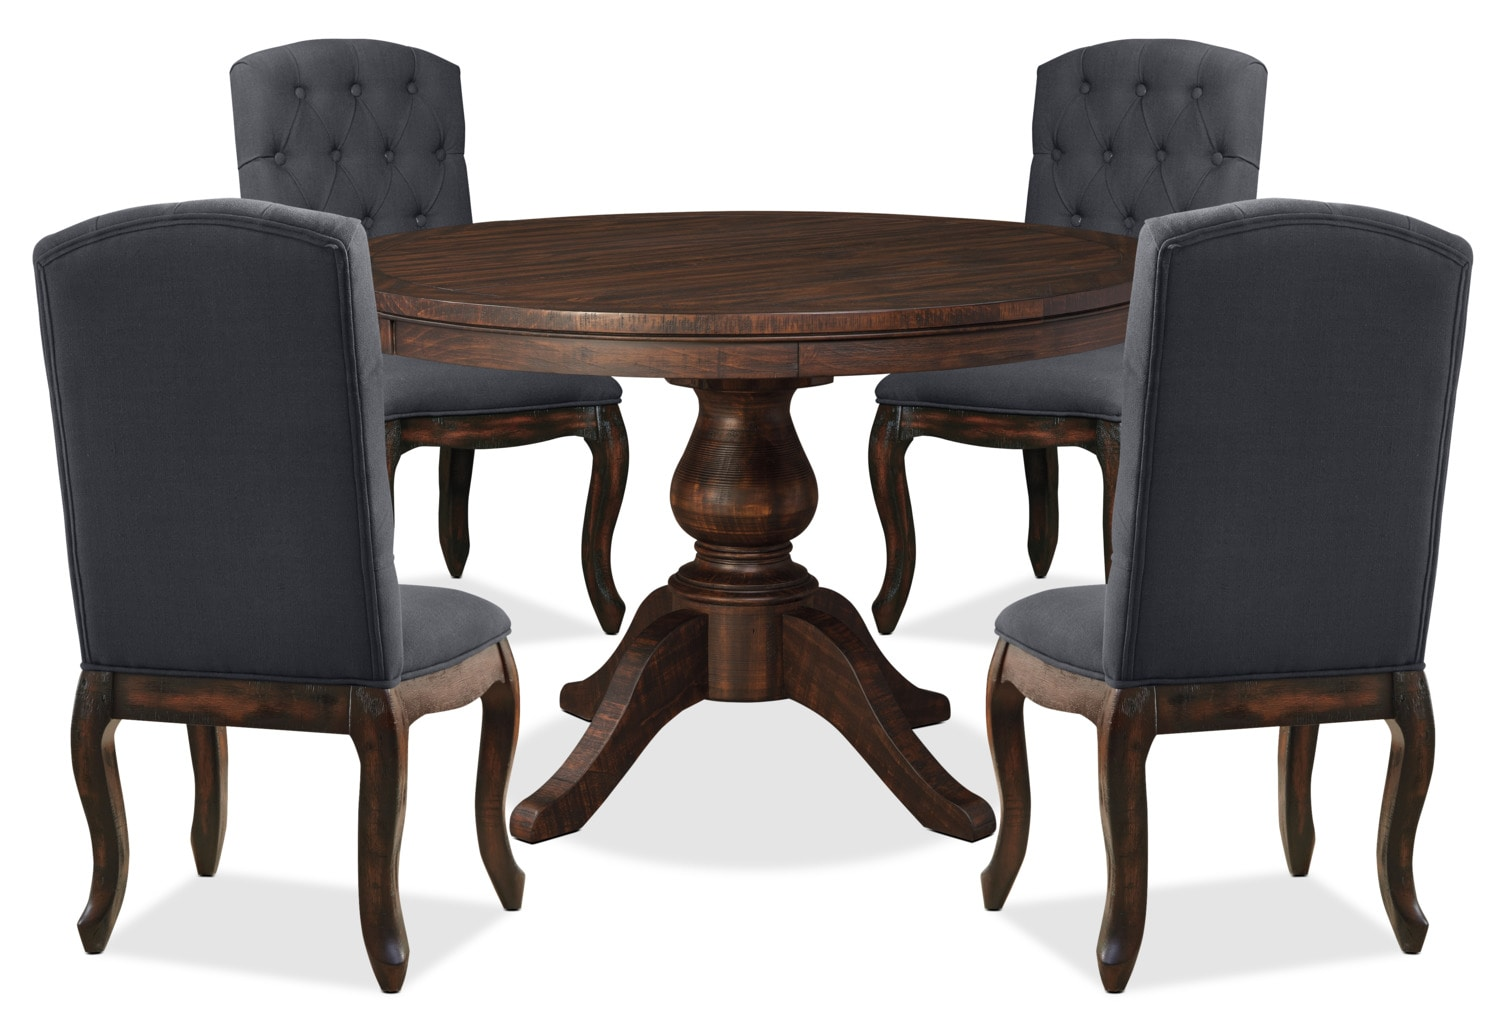 Dining Room Furniture - Trudell 5-Piece Round Dining Package with Upholstered Chairs